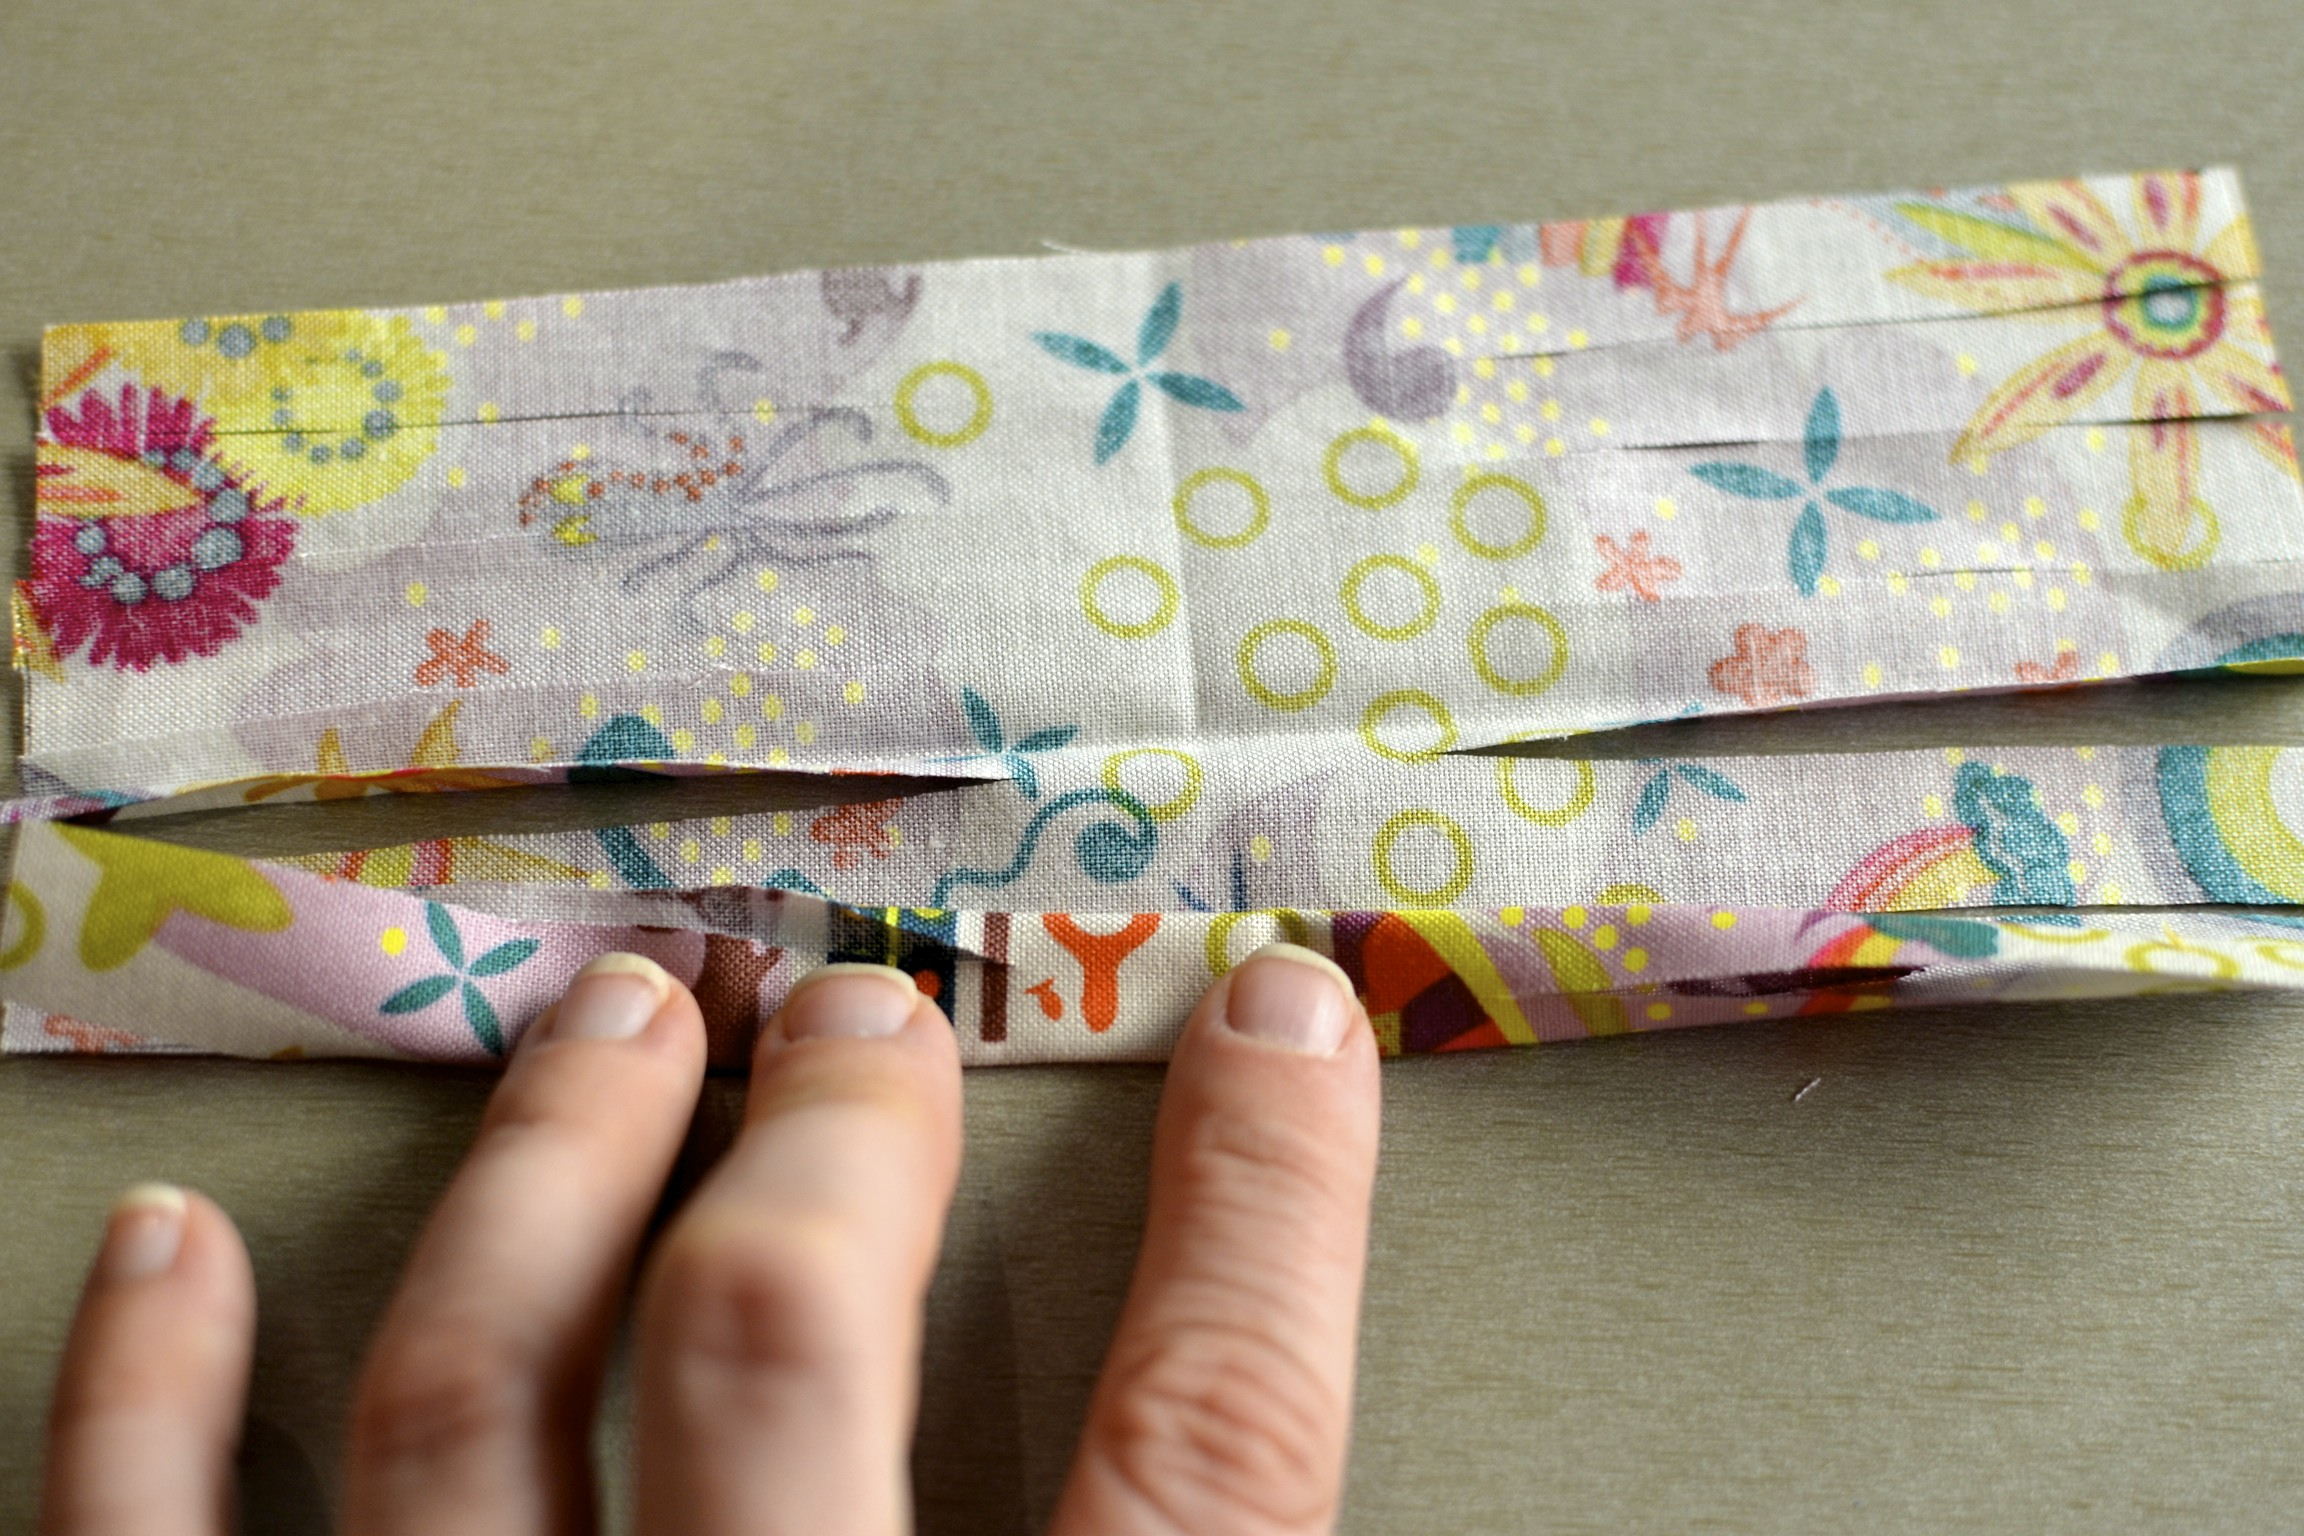 unfold the fabric square and roll/fold it up all the way.